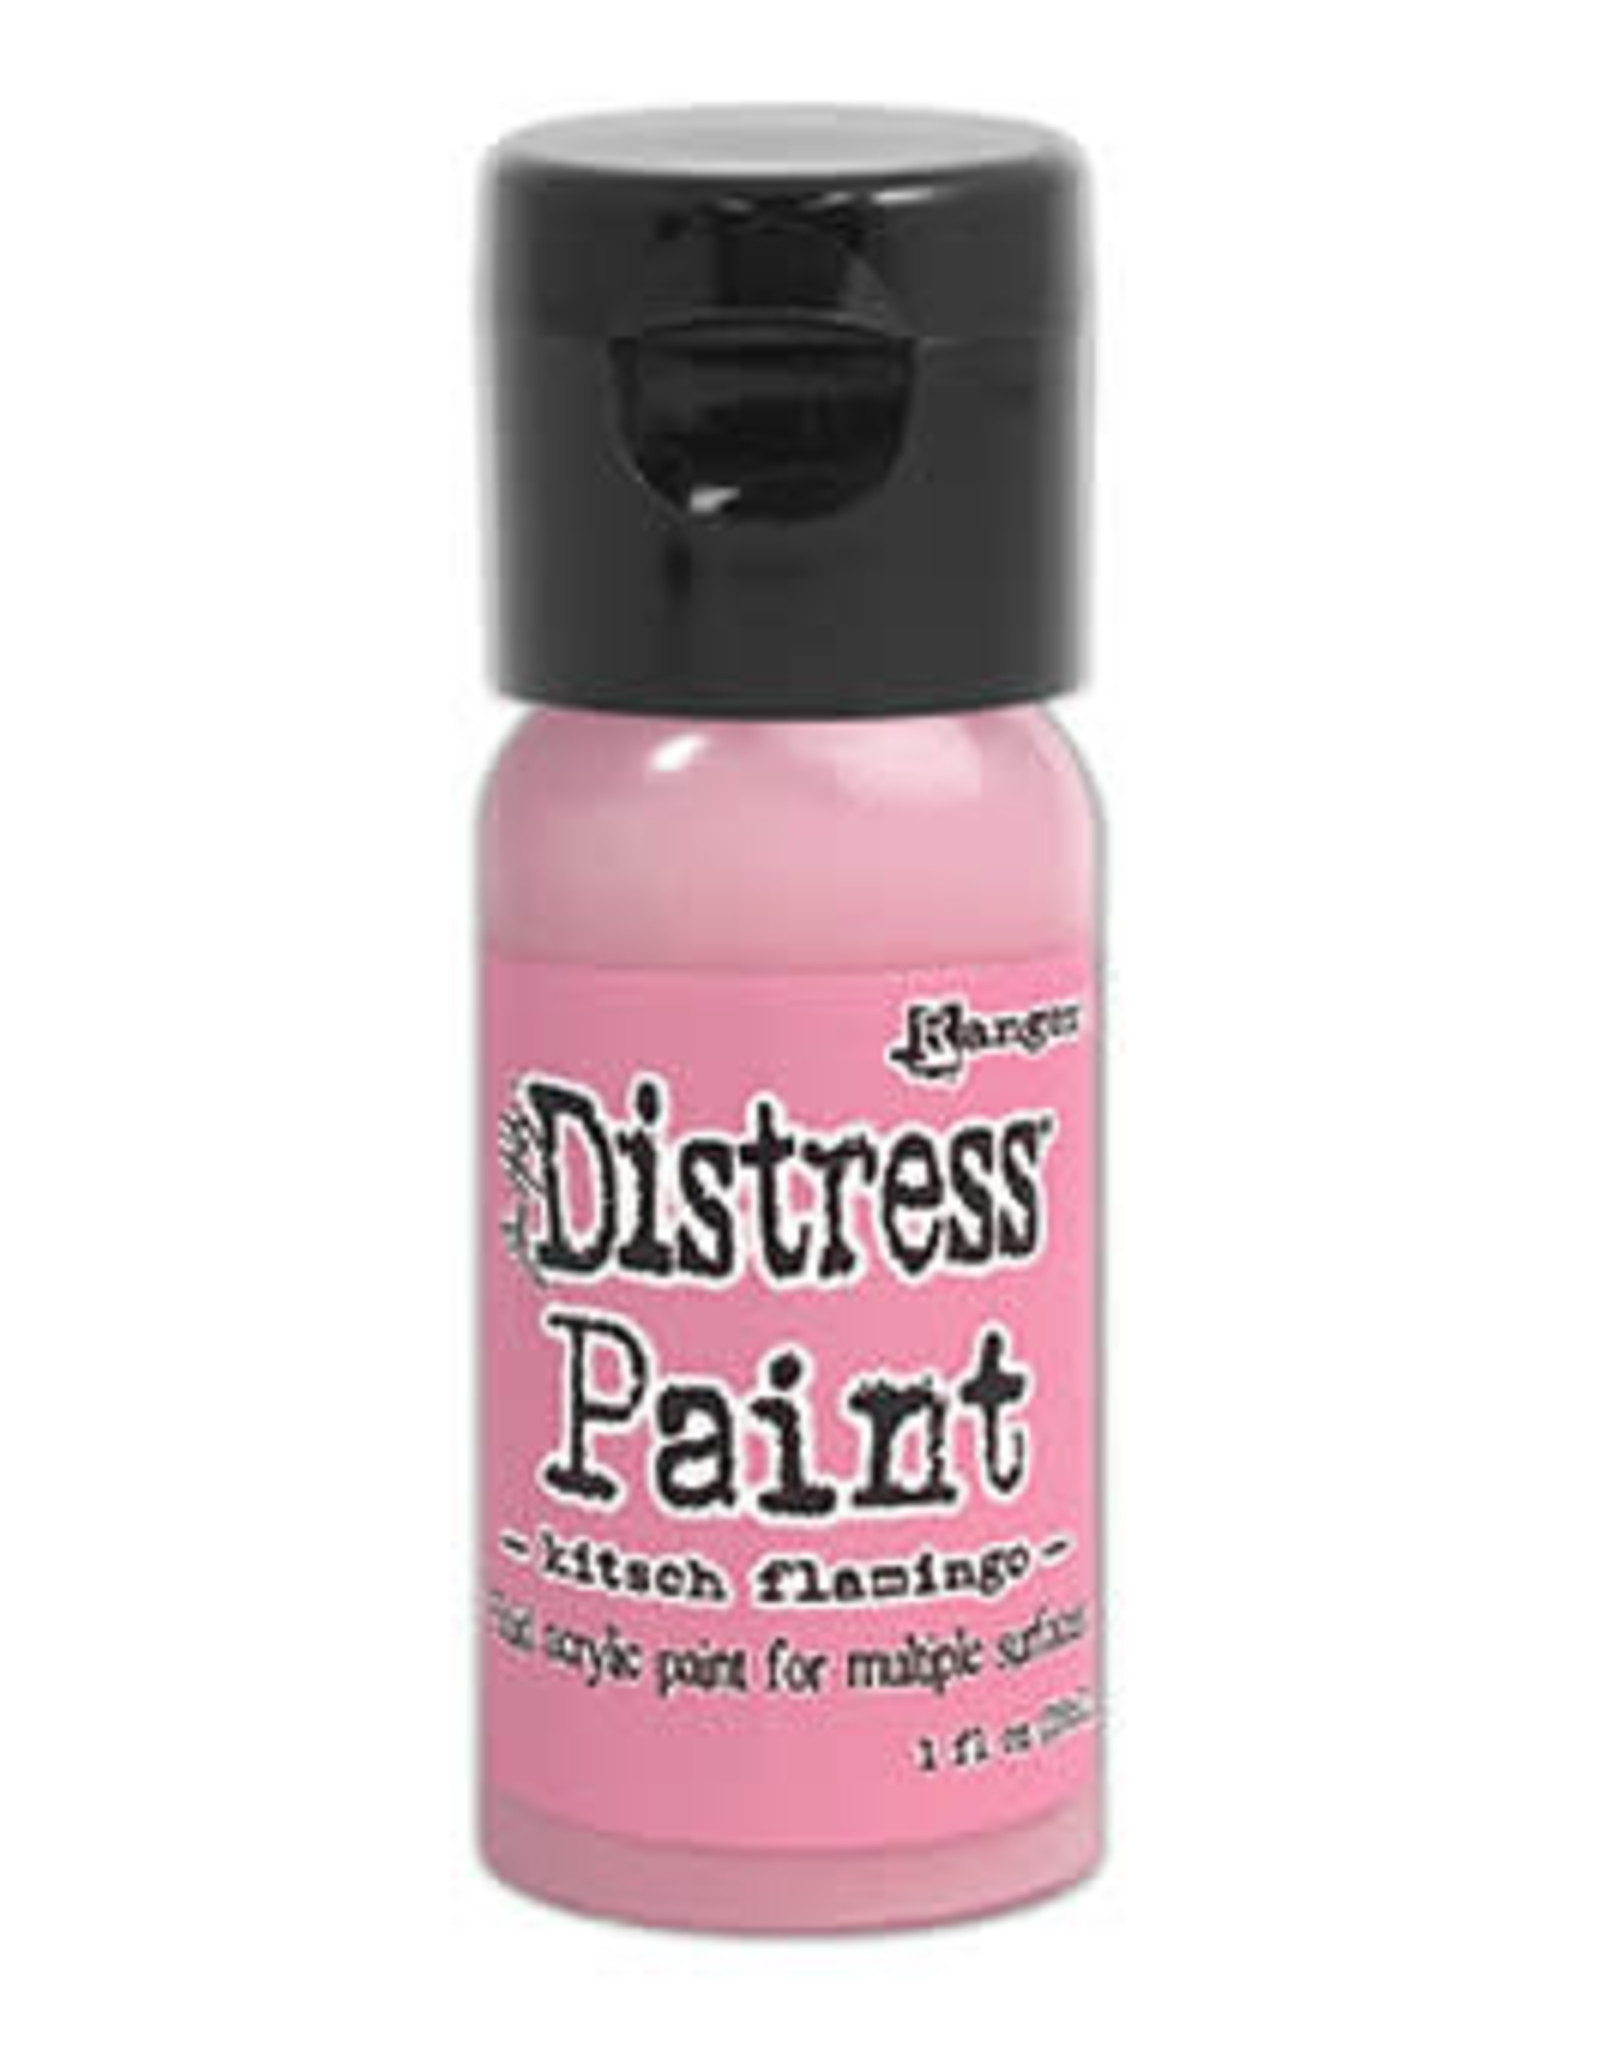 Ranger Ranger Distress paint flip cap bottle  Kitsch Flamingo